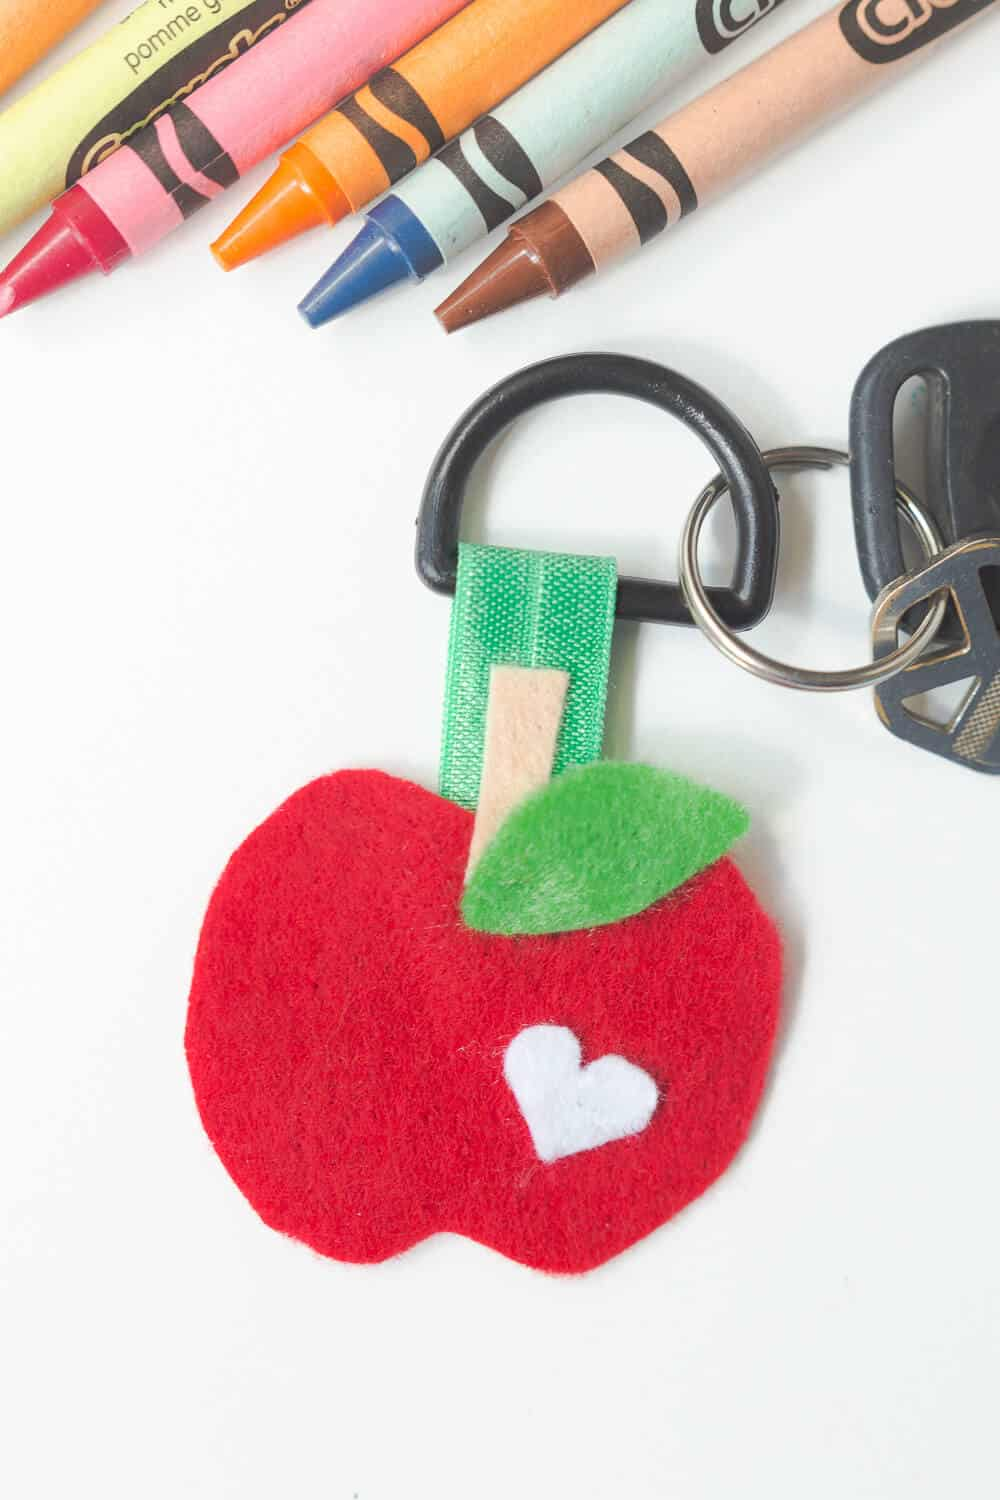 Felt Apple Keychain... a fun, easy craft perfect for gift-giving!